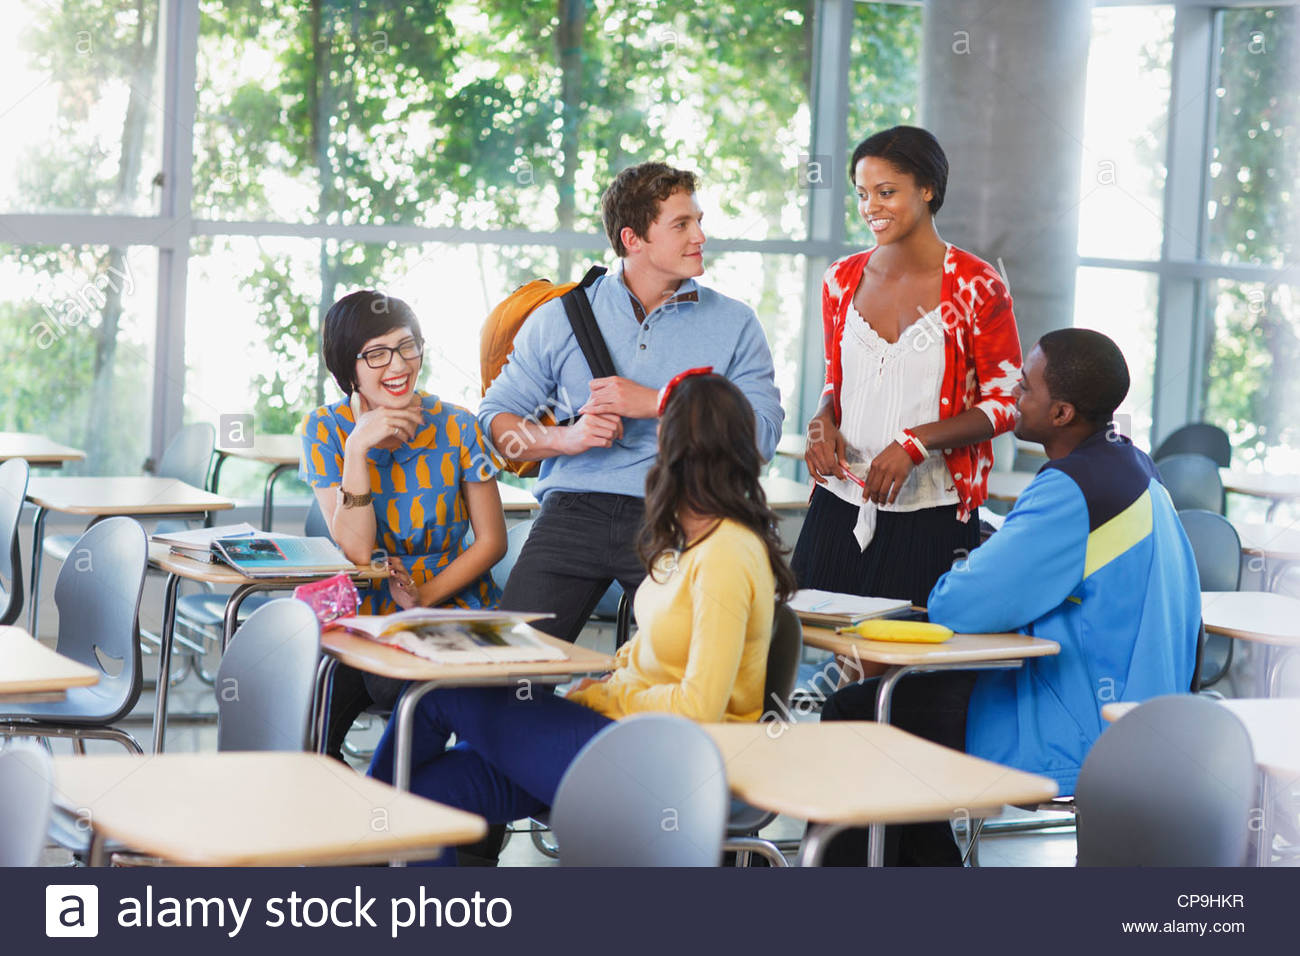 18-19 years,20-24 years,25-29 years,african ethnicity,asian ethnicity,casual - Stock Image